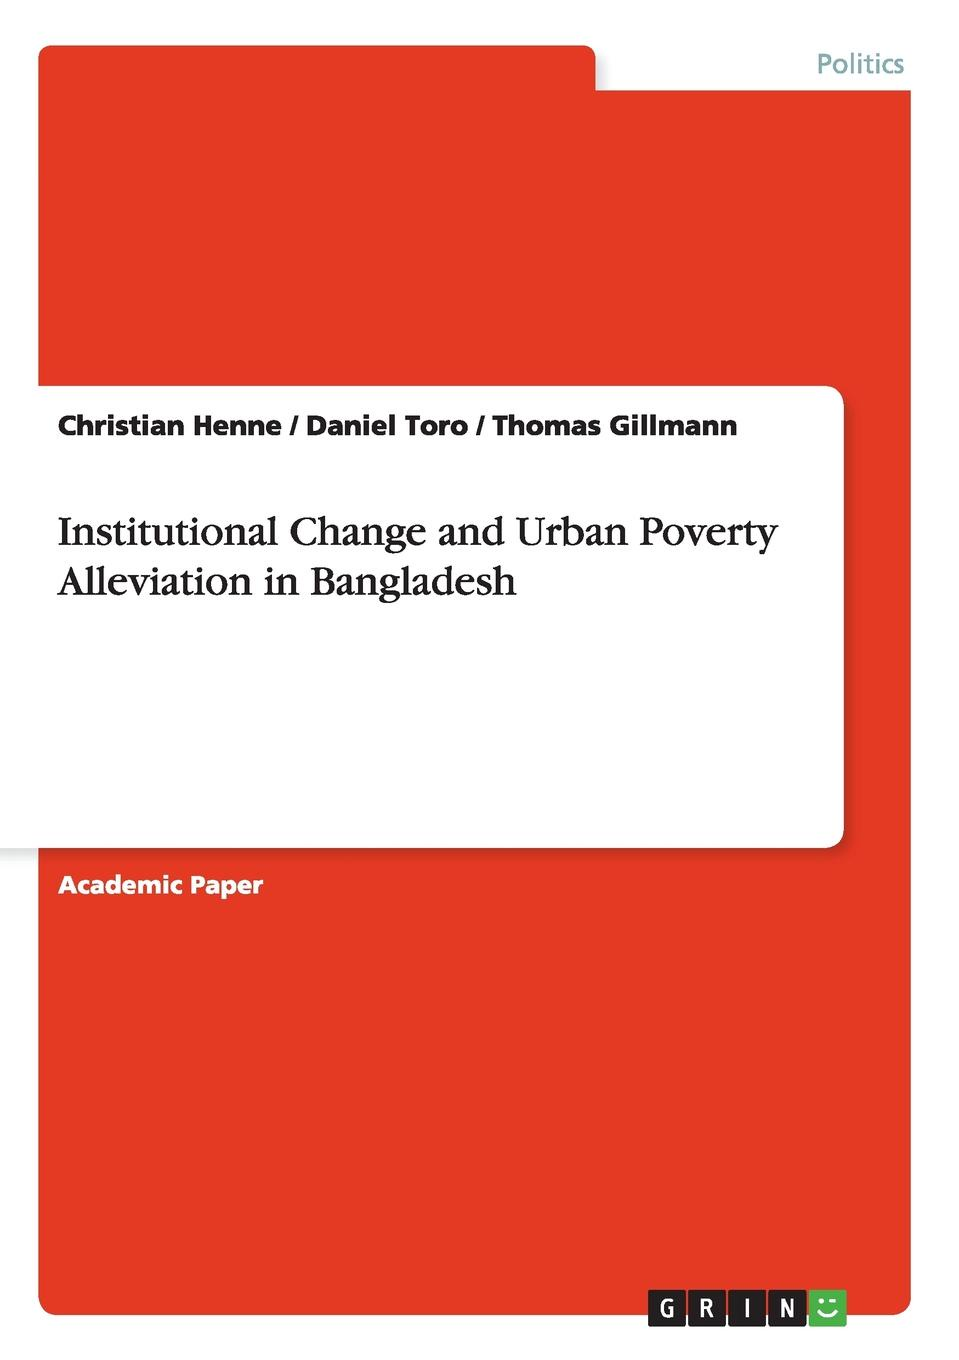 Christian Henne, Daniel Toro, Thomas Gillmann Institutional Change and Urban Poverty Alleviation in Bangladesh micro perspectives on poverty alleviation in kenya